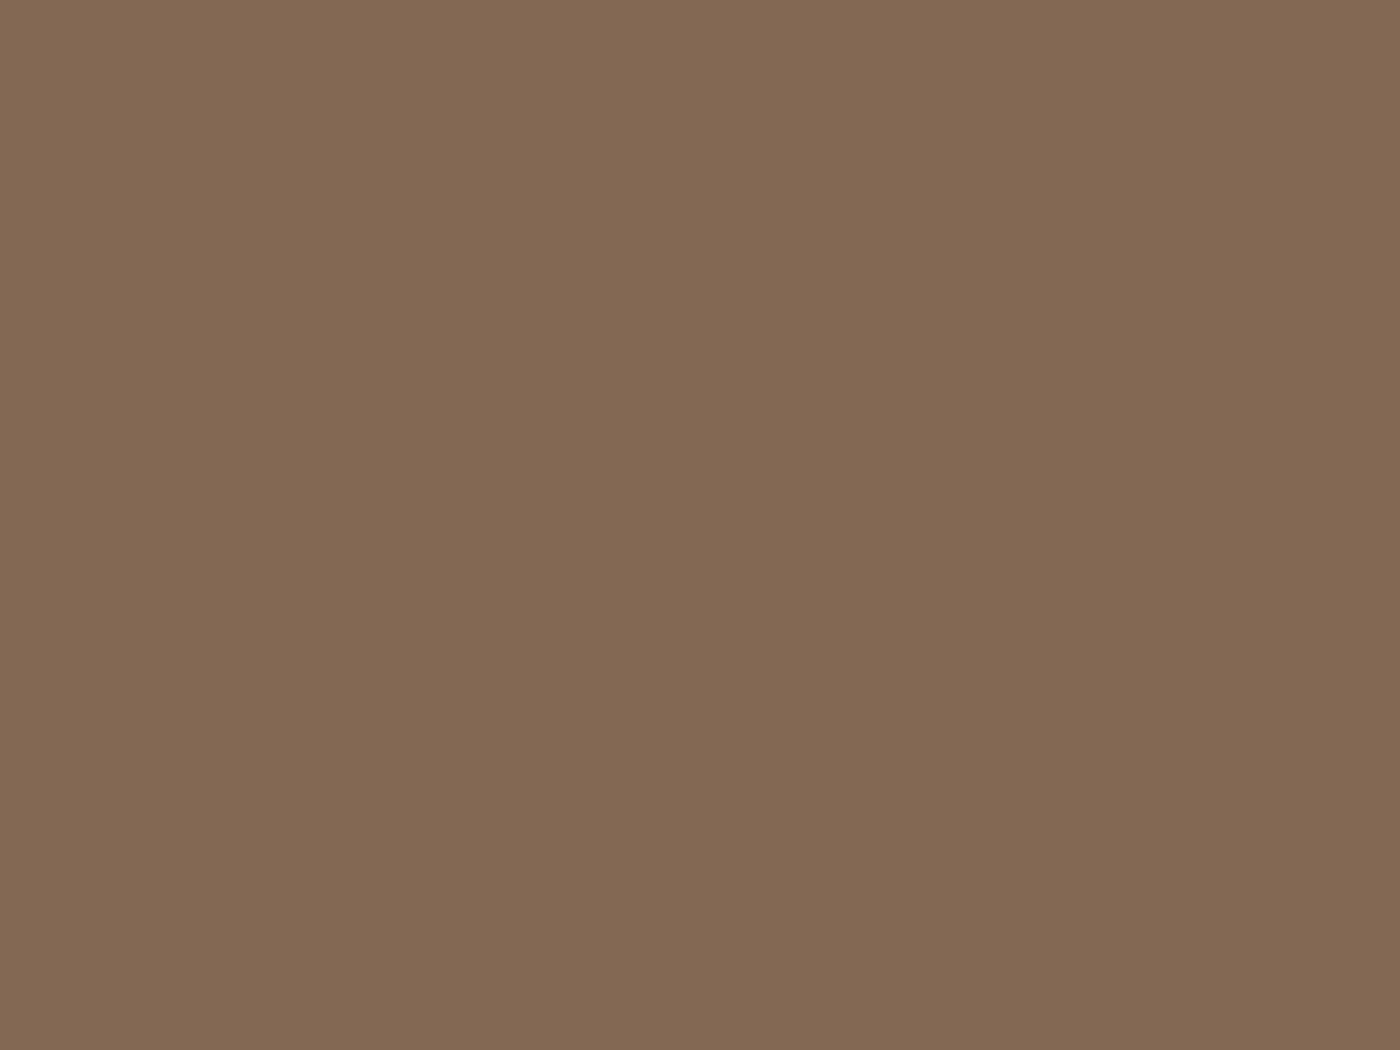 1400x1050 Pastel Brown Solid Color Background